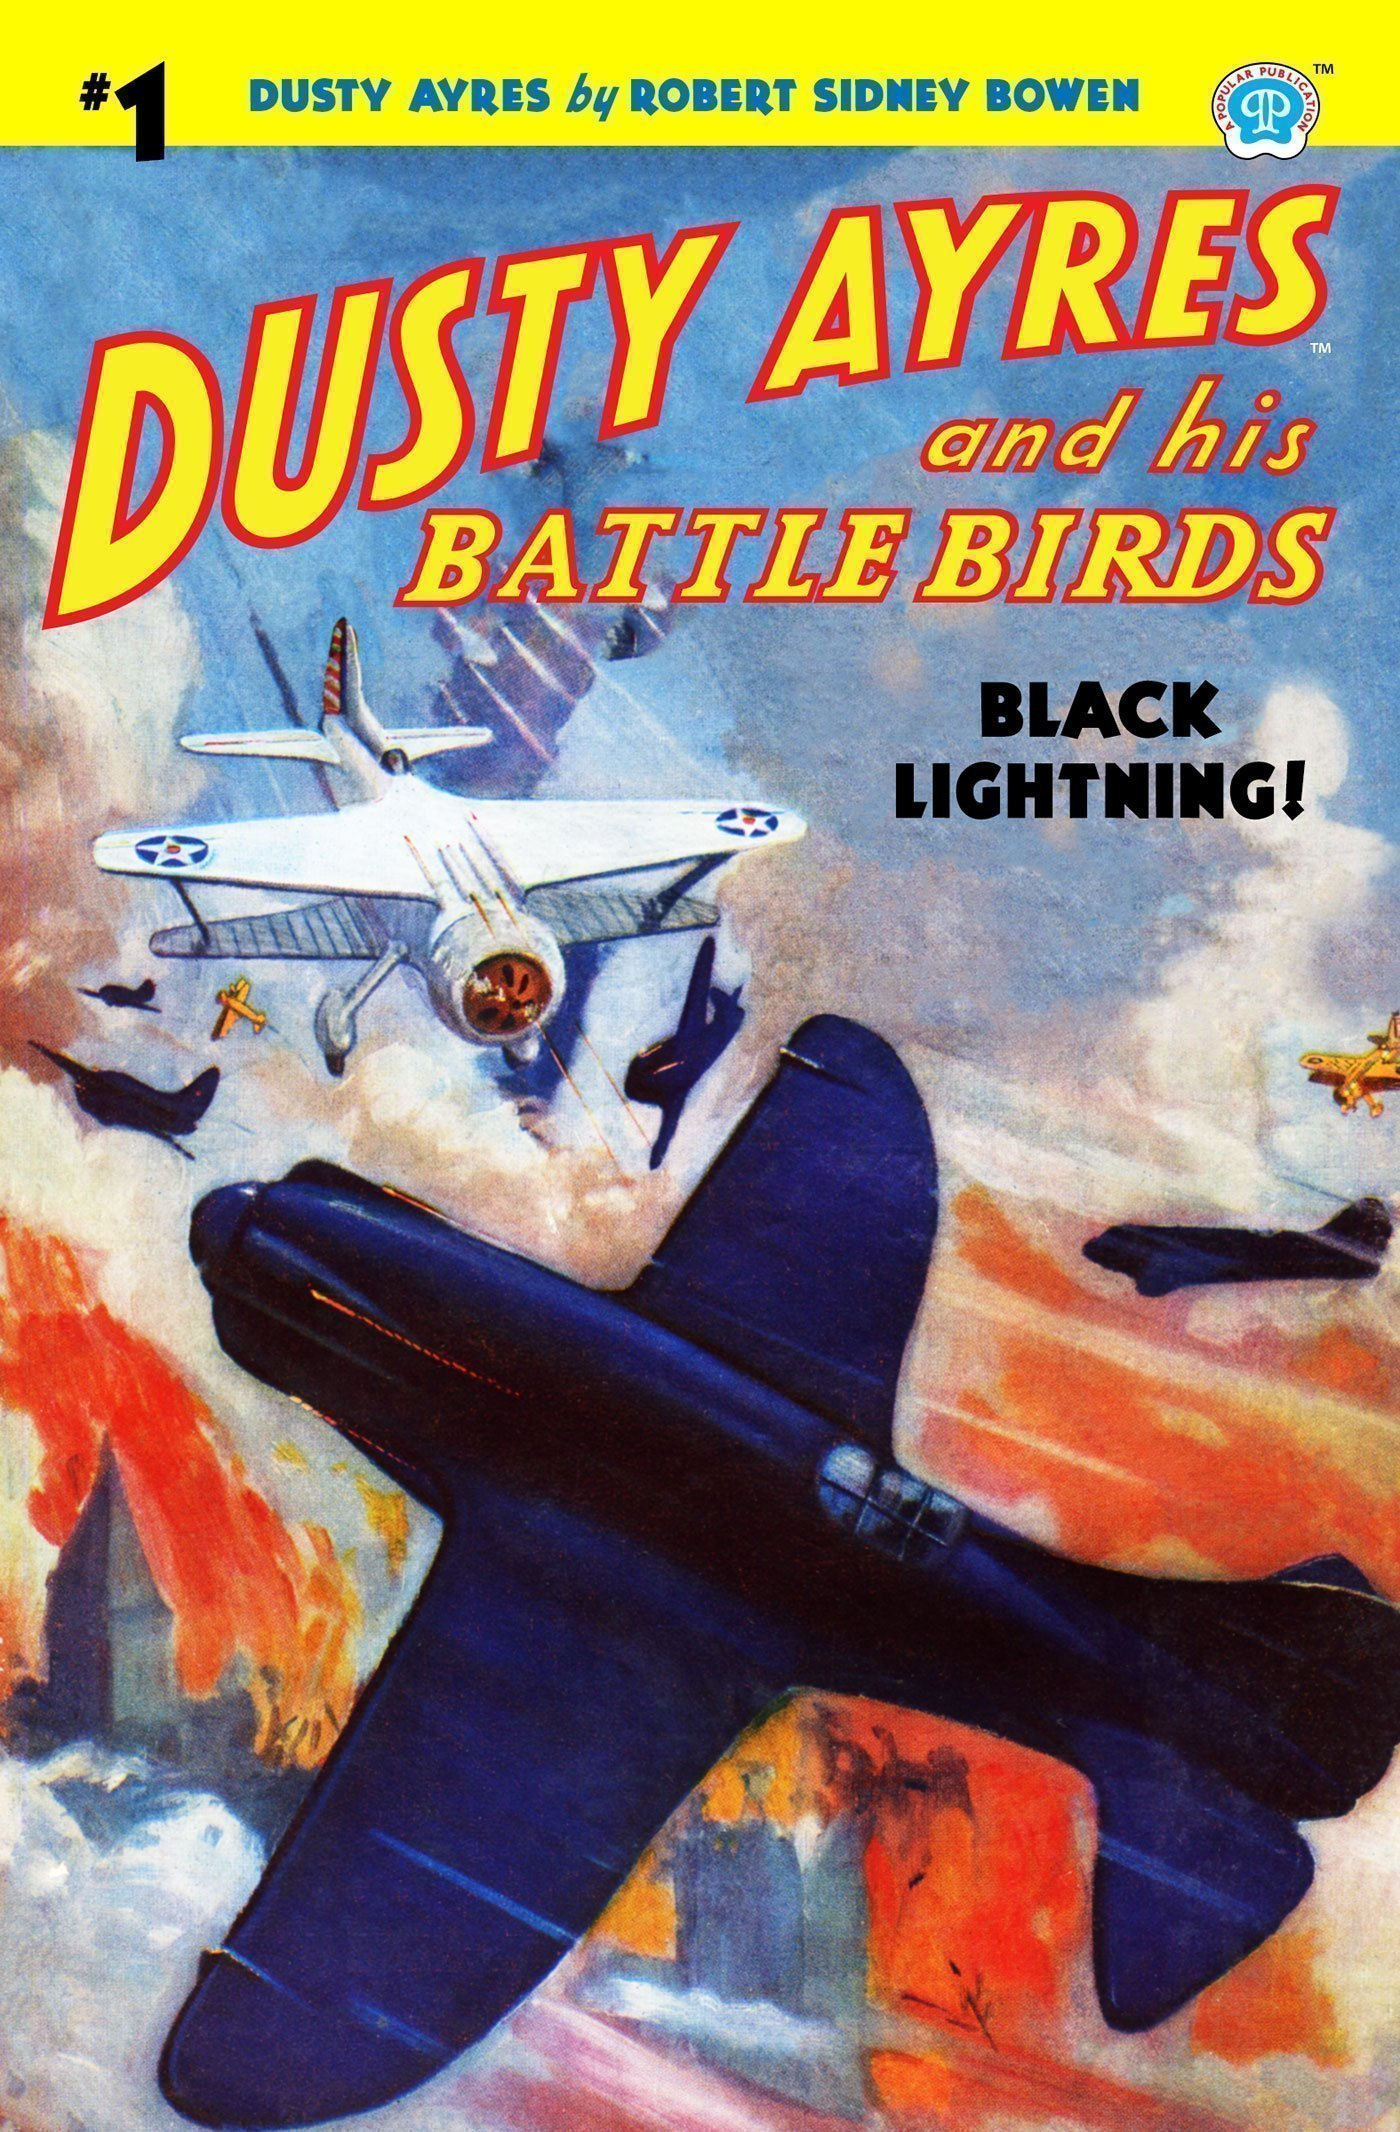 Dusty Ayres and his Battle Birds #1: Black Lightning!